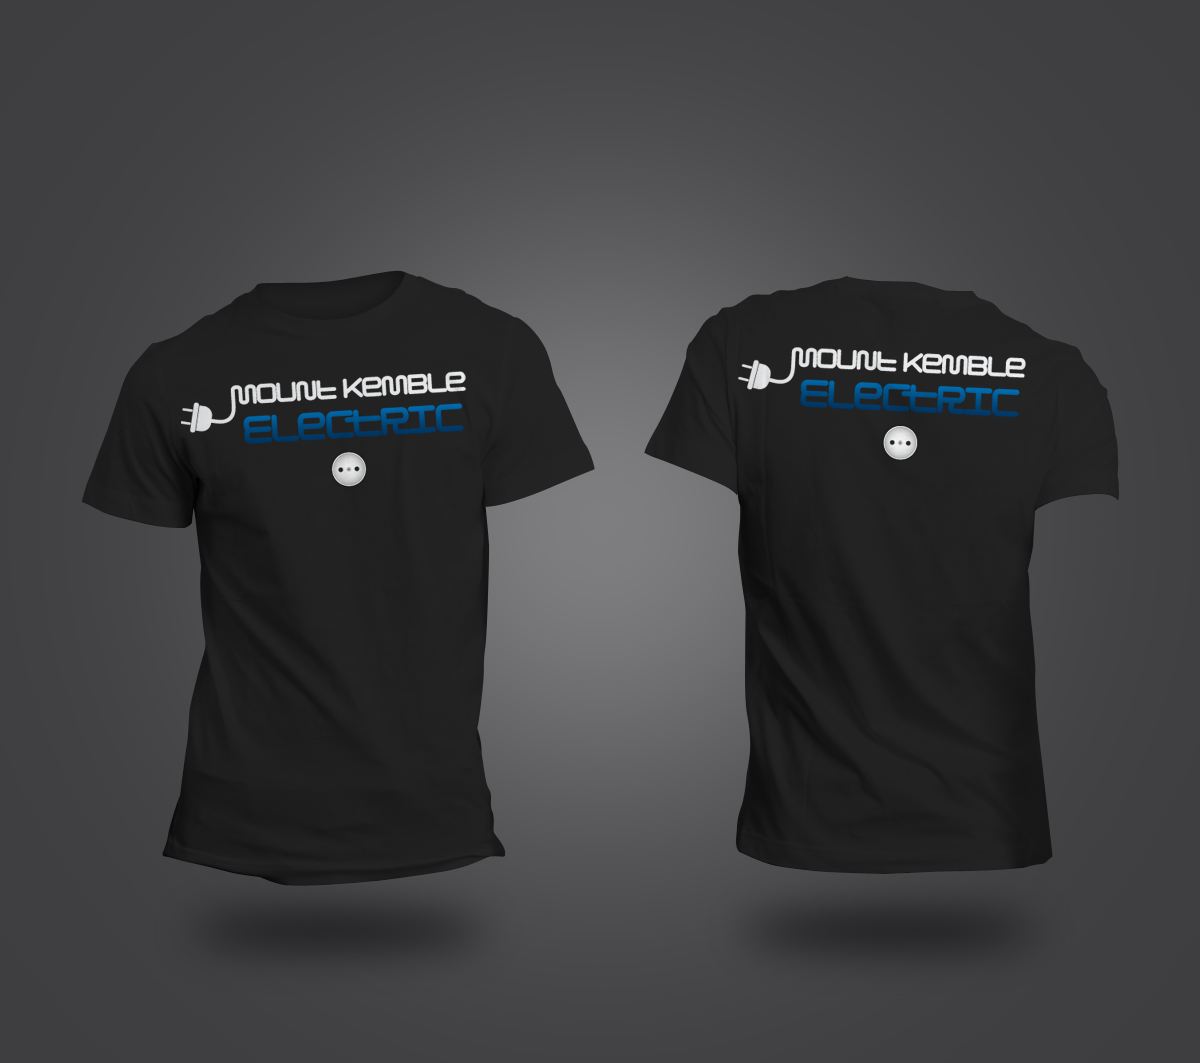 Contractor T Shirt Design For A Company In United States